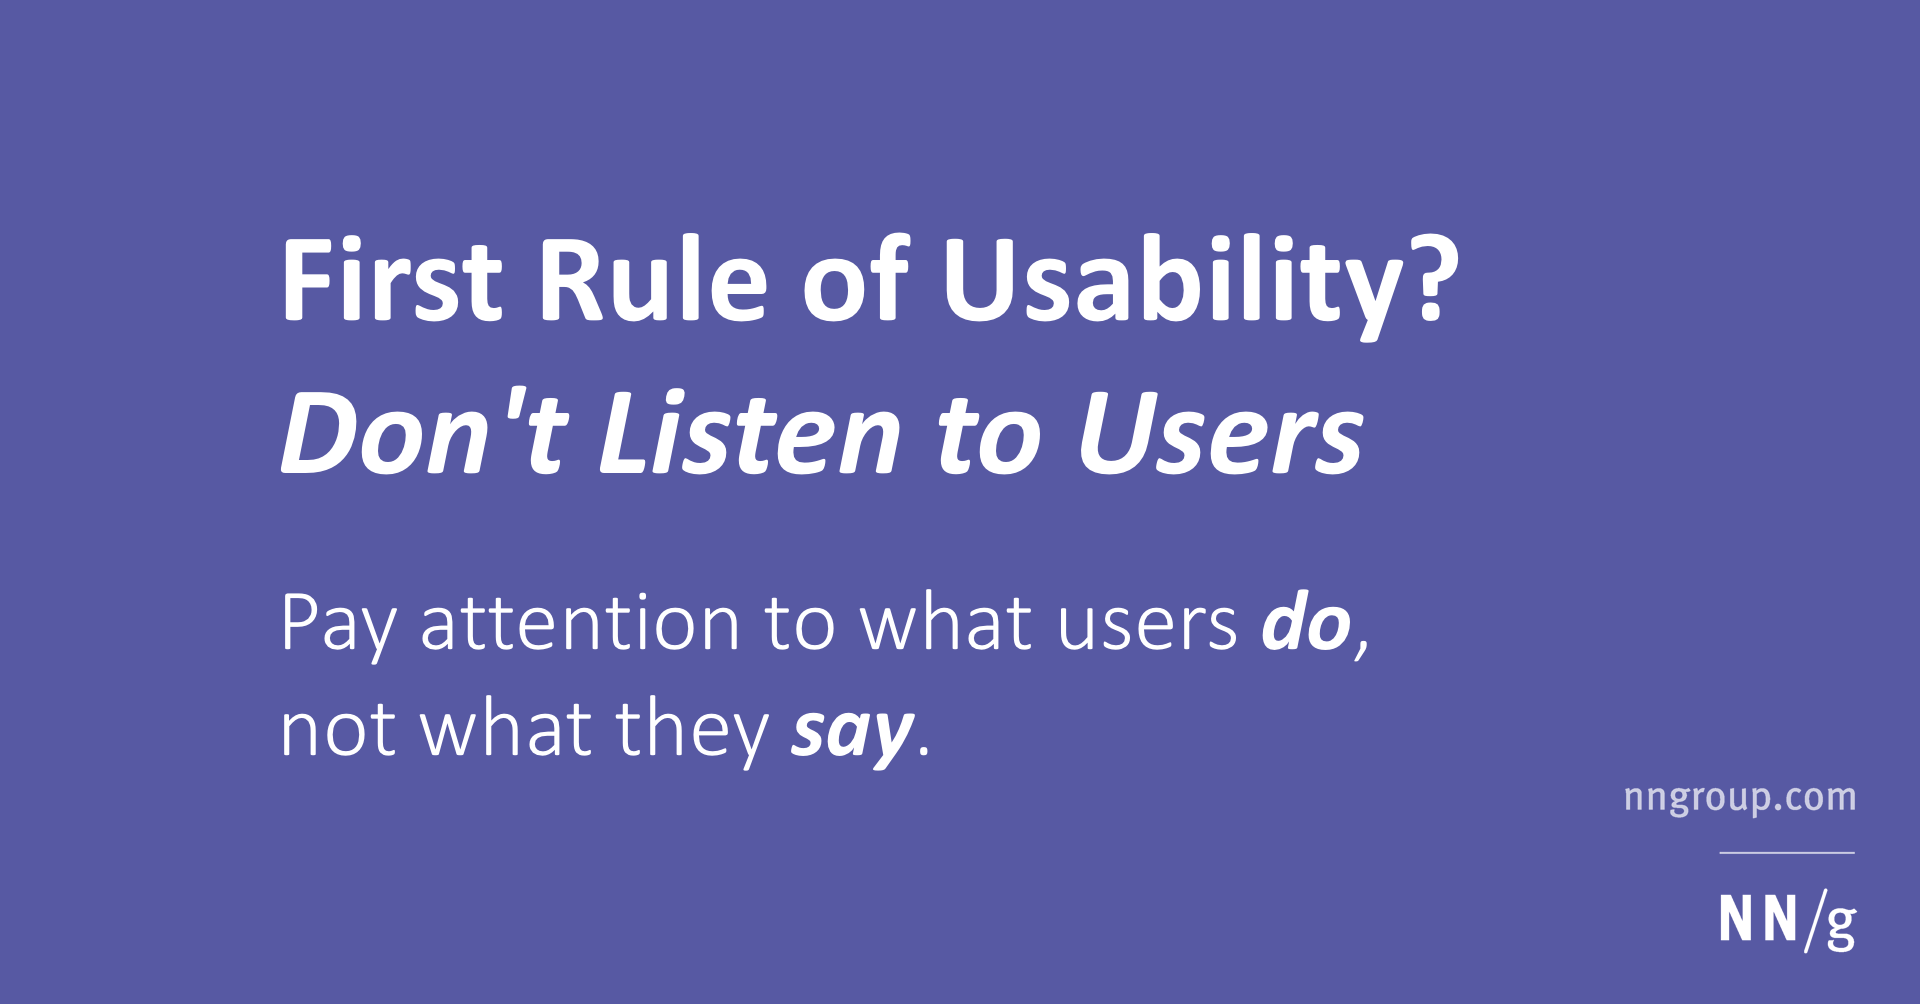 First Rule of Usability? Don't Listen to Users